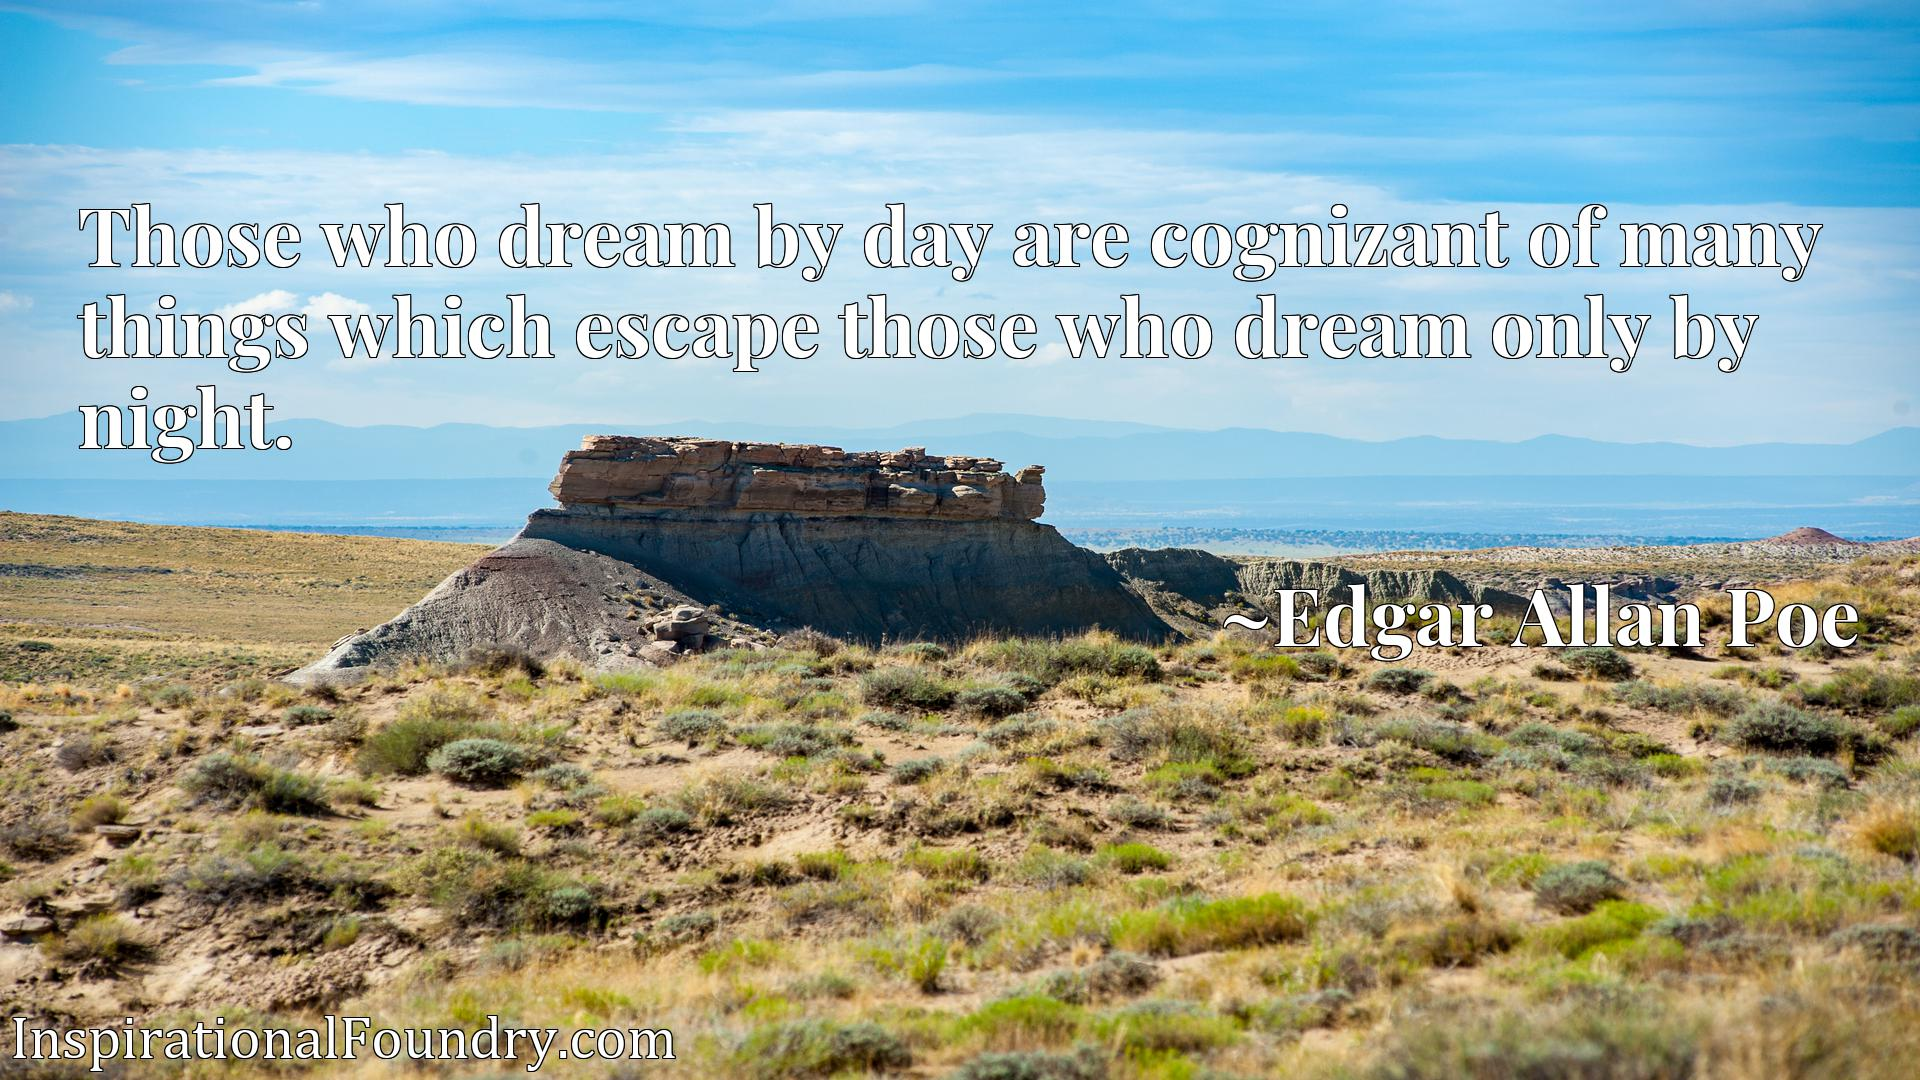 Those who dream by day are cognizant of many things which escape those who dream only by night.